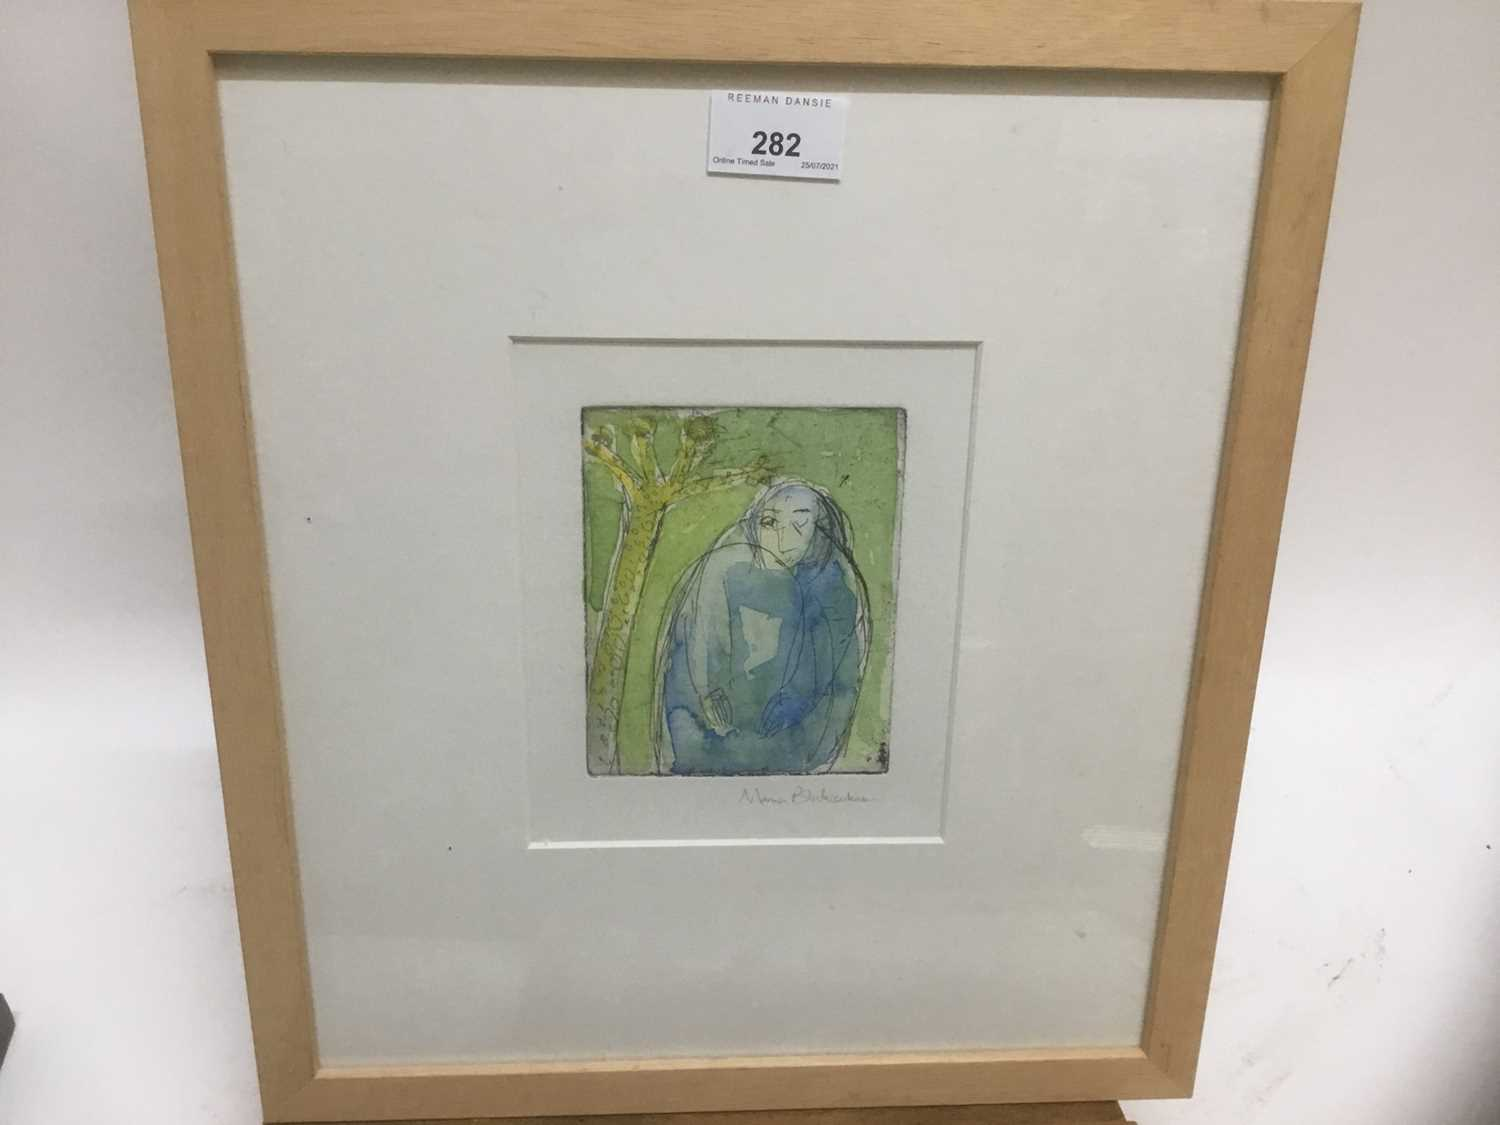 Marcia Blakenham (b. 1946), two signed etchings - figures, one numbered 15/16, in glazed frames - Image 6 of 9